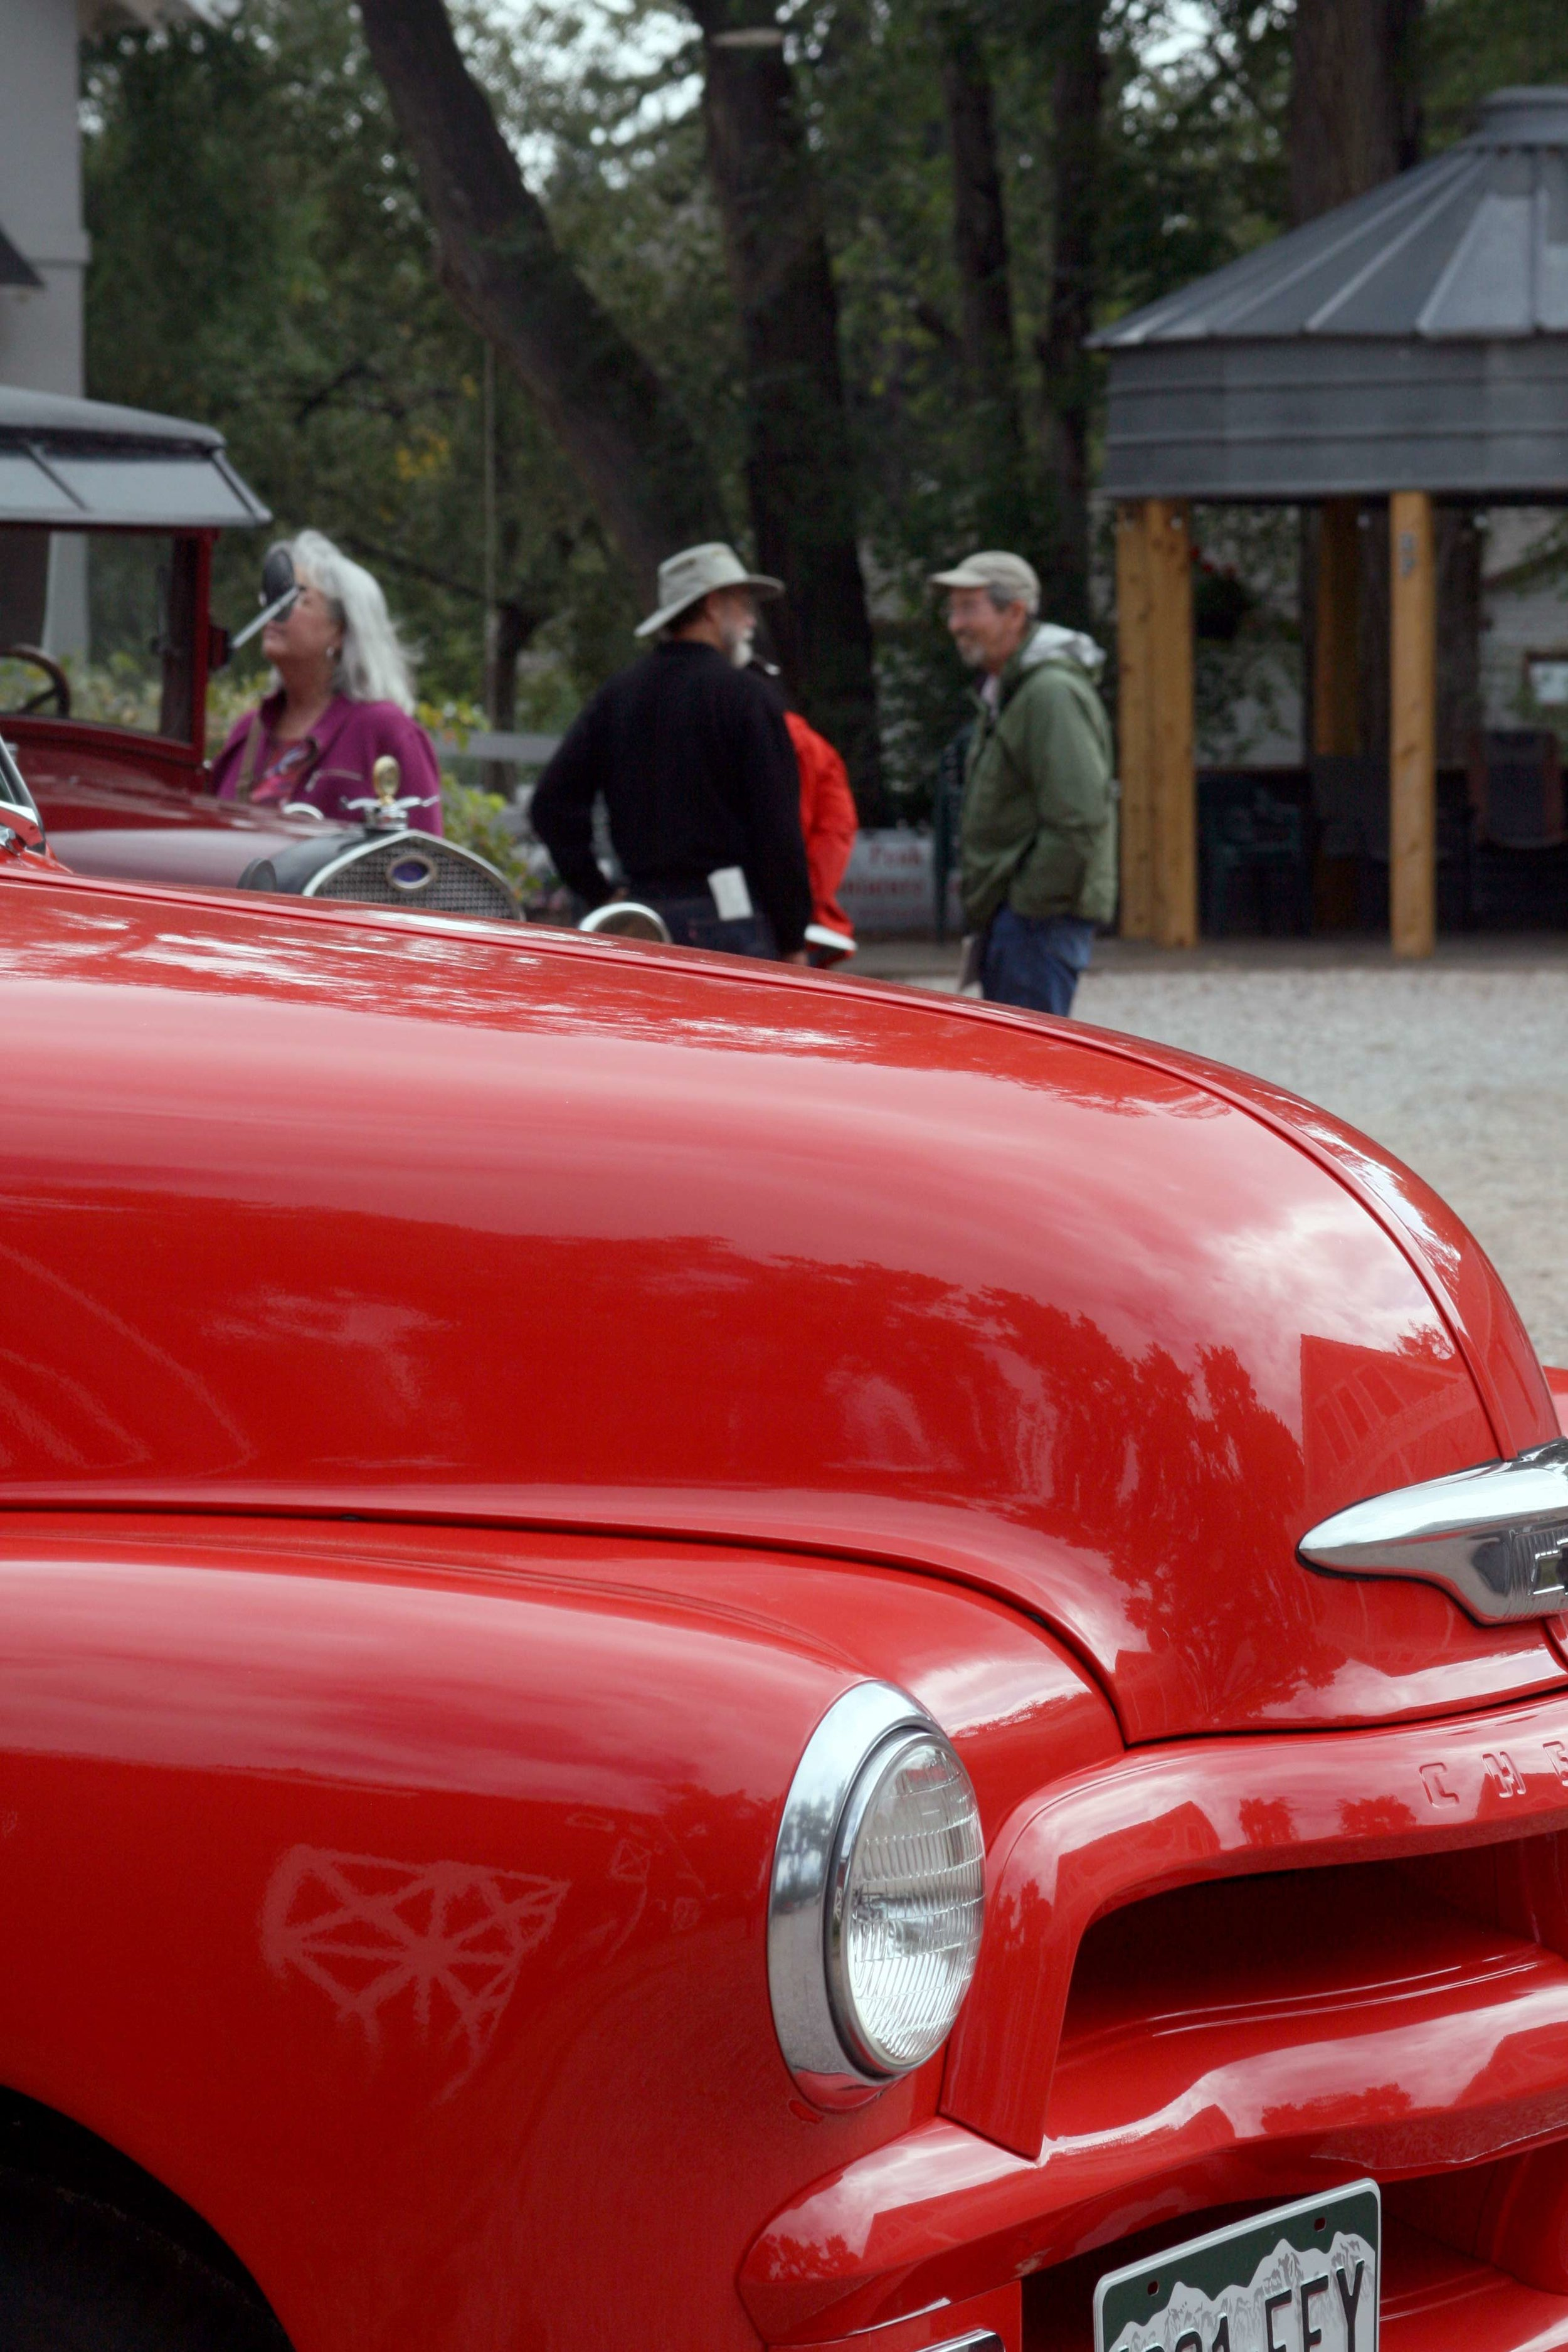 Vintage cars & farm equipment were on display at the featured farm property on the 2017 Tour